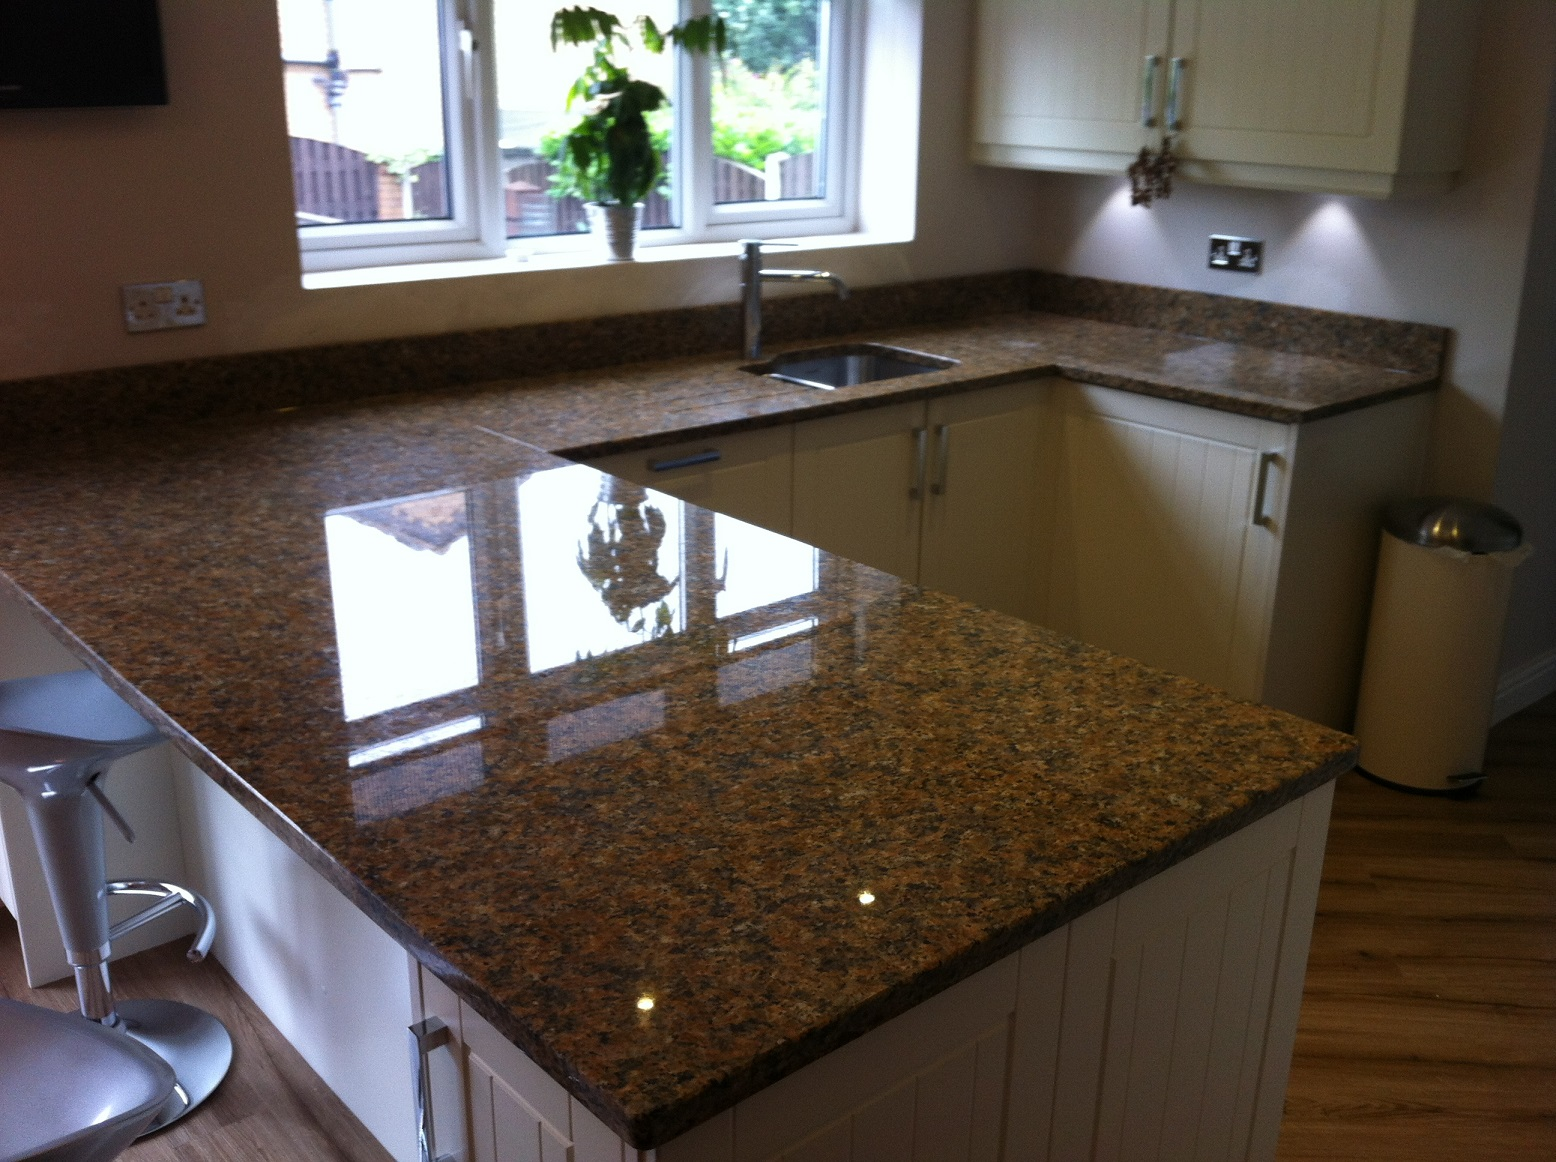 Quartz Worktops : We supply Marble Worktops, Granite Worktops and Quartz Worktops in the ...